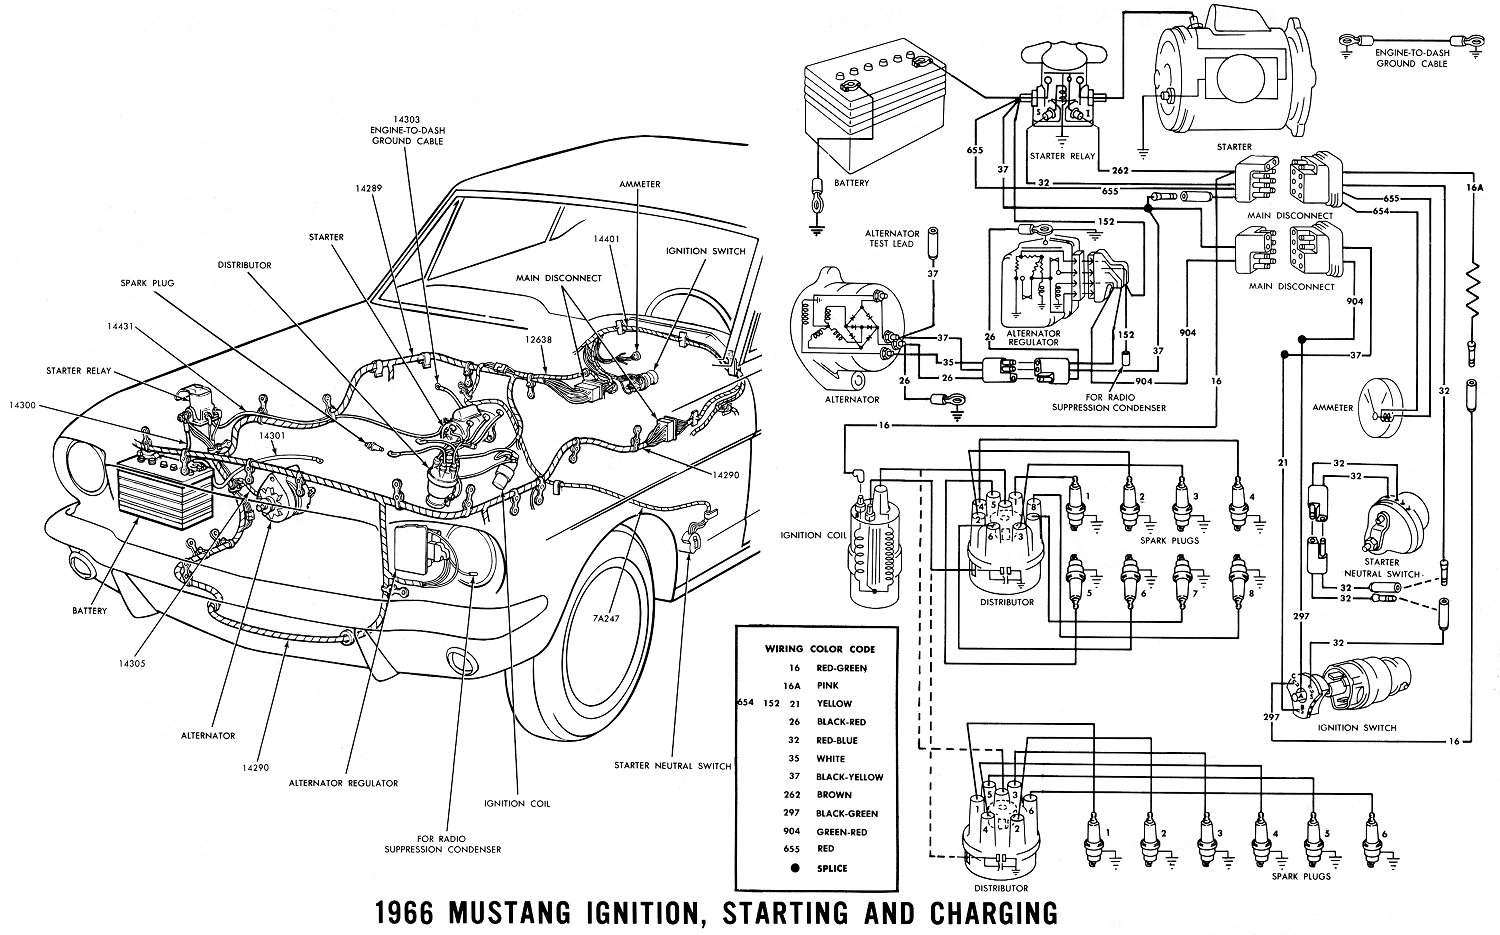 66ignit wiring diagrams \u2022 j squared co Ignition Switch Wiring Diagram at fashall.co